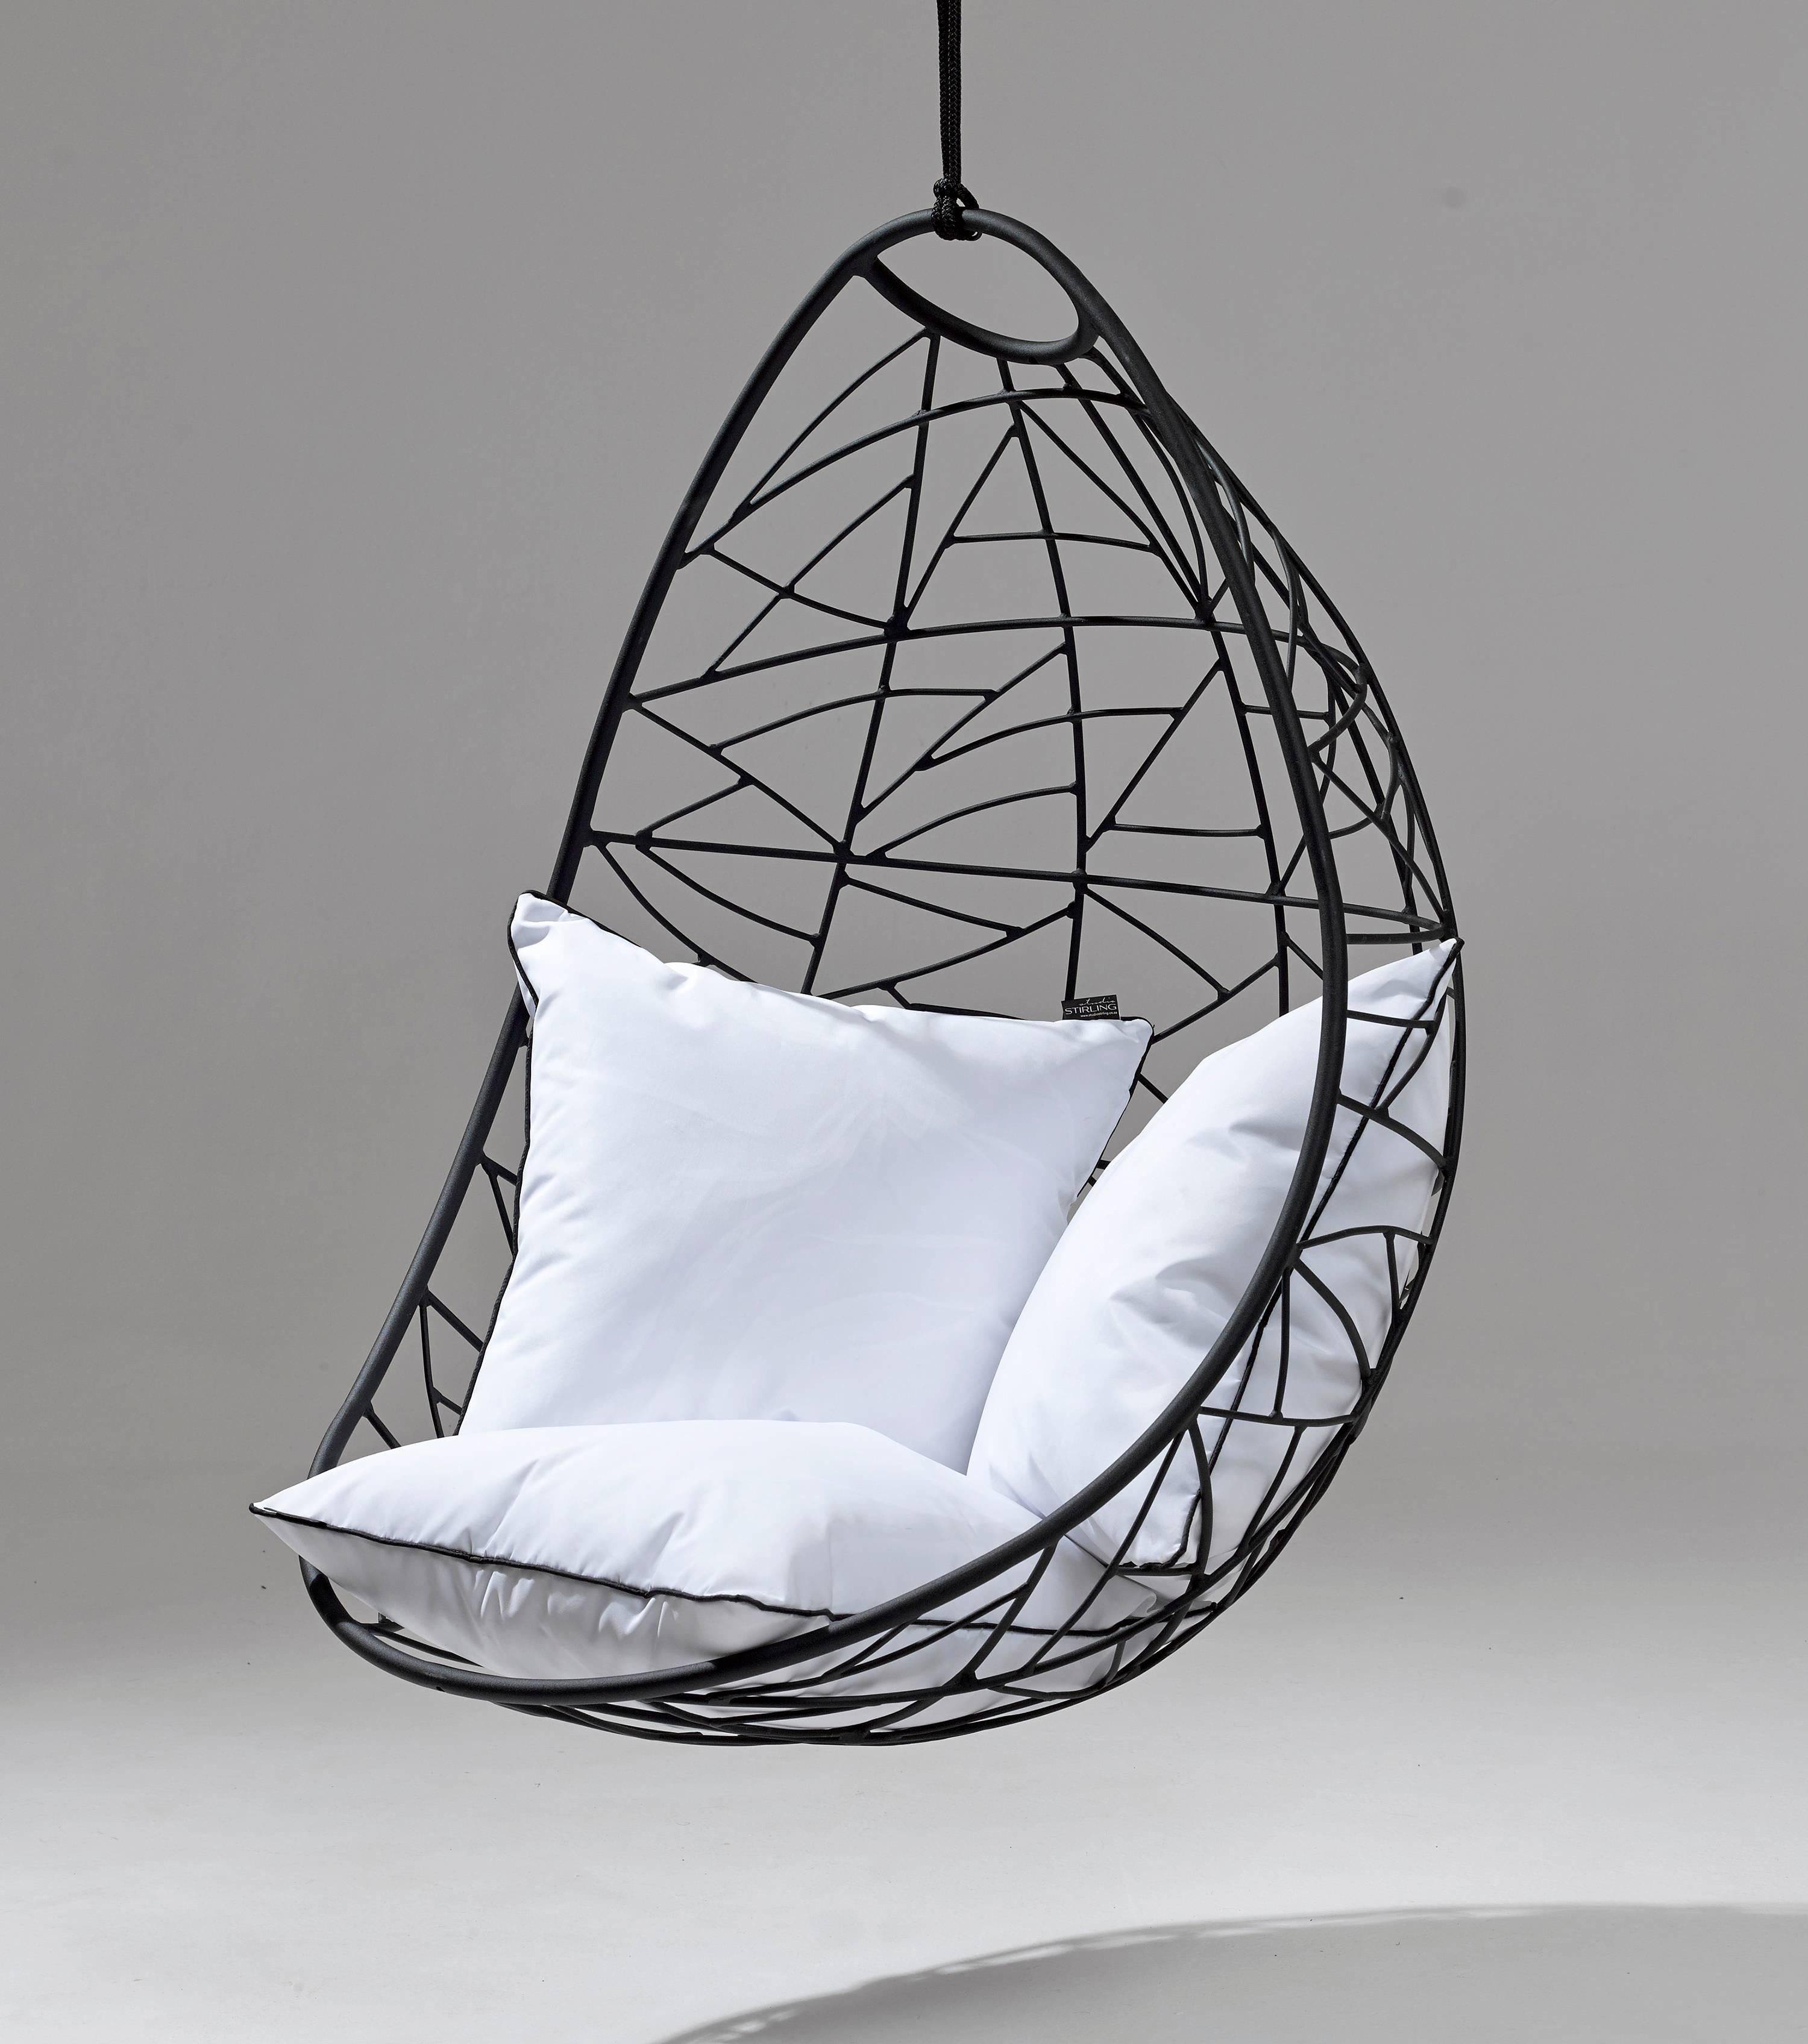 Egg Swing Chairs Nest Egg Hanging Swing Chair